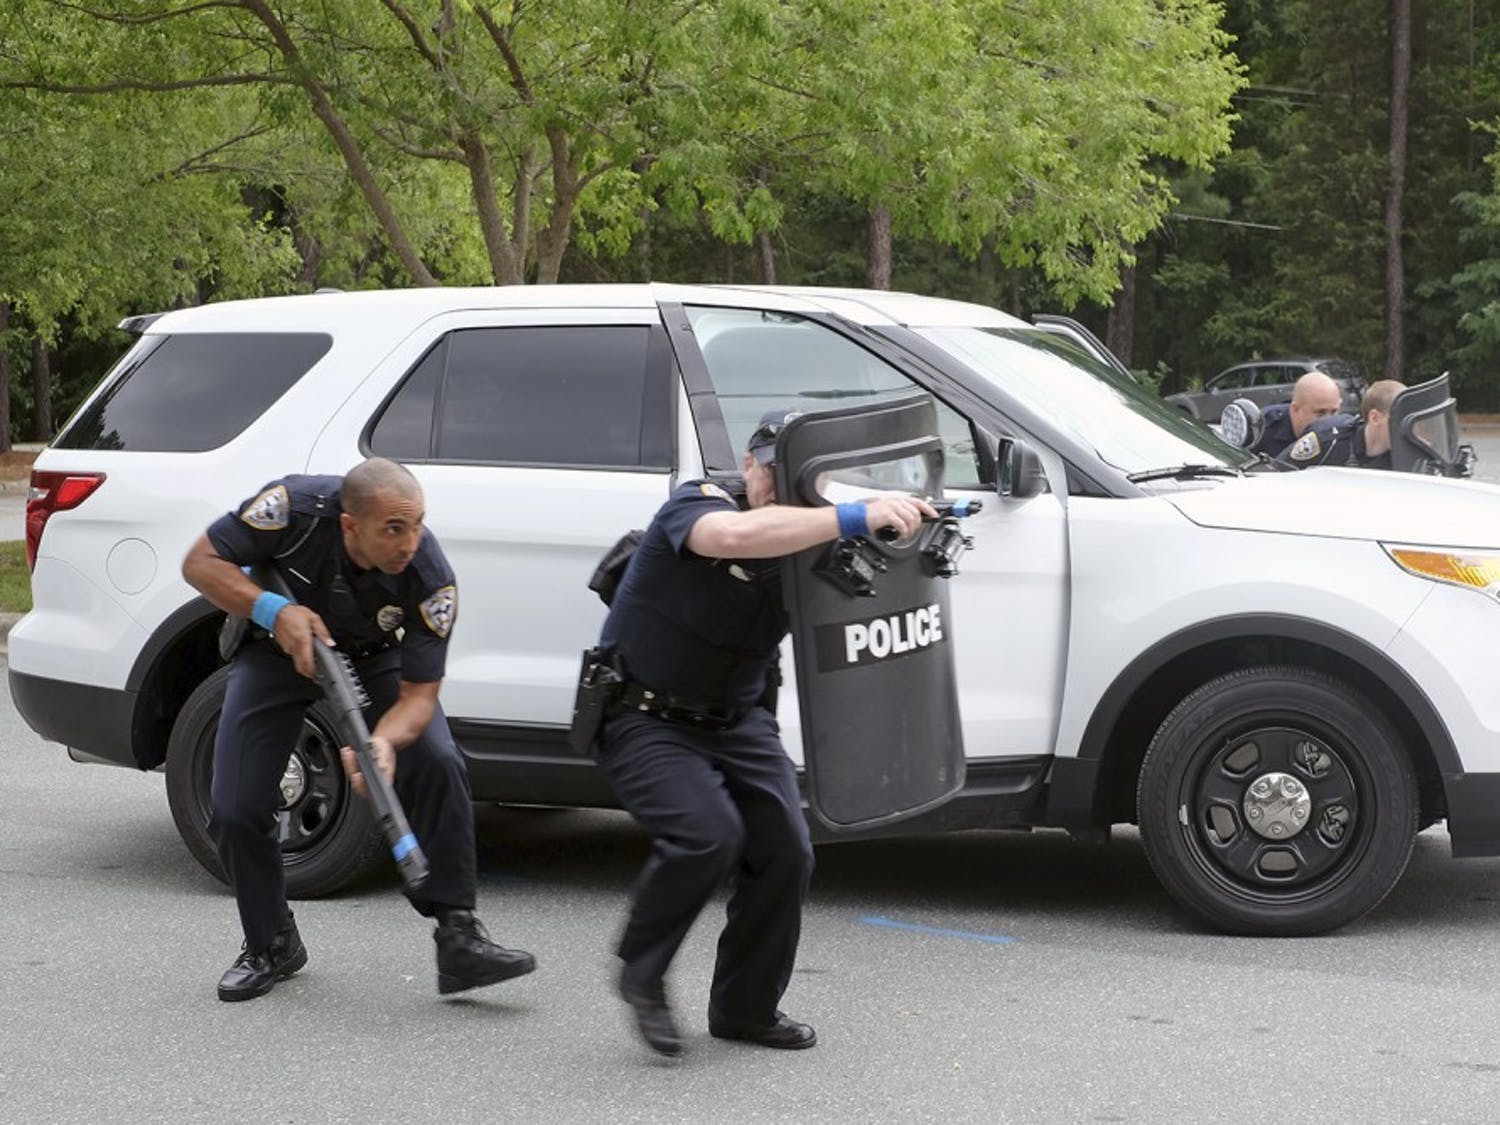 On Monday August 10, 2015, the Department of Public Safety held an emergency response drill in response to a communication failure that happened in July 2015.